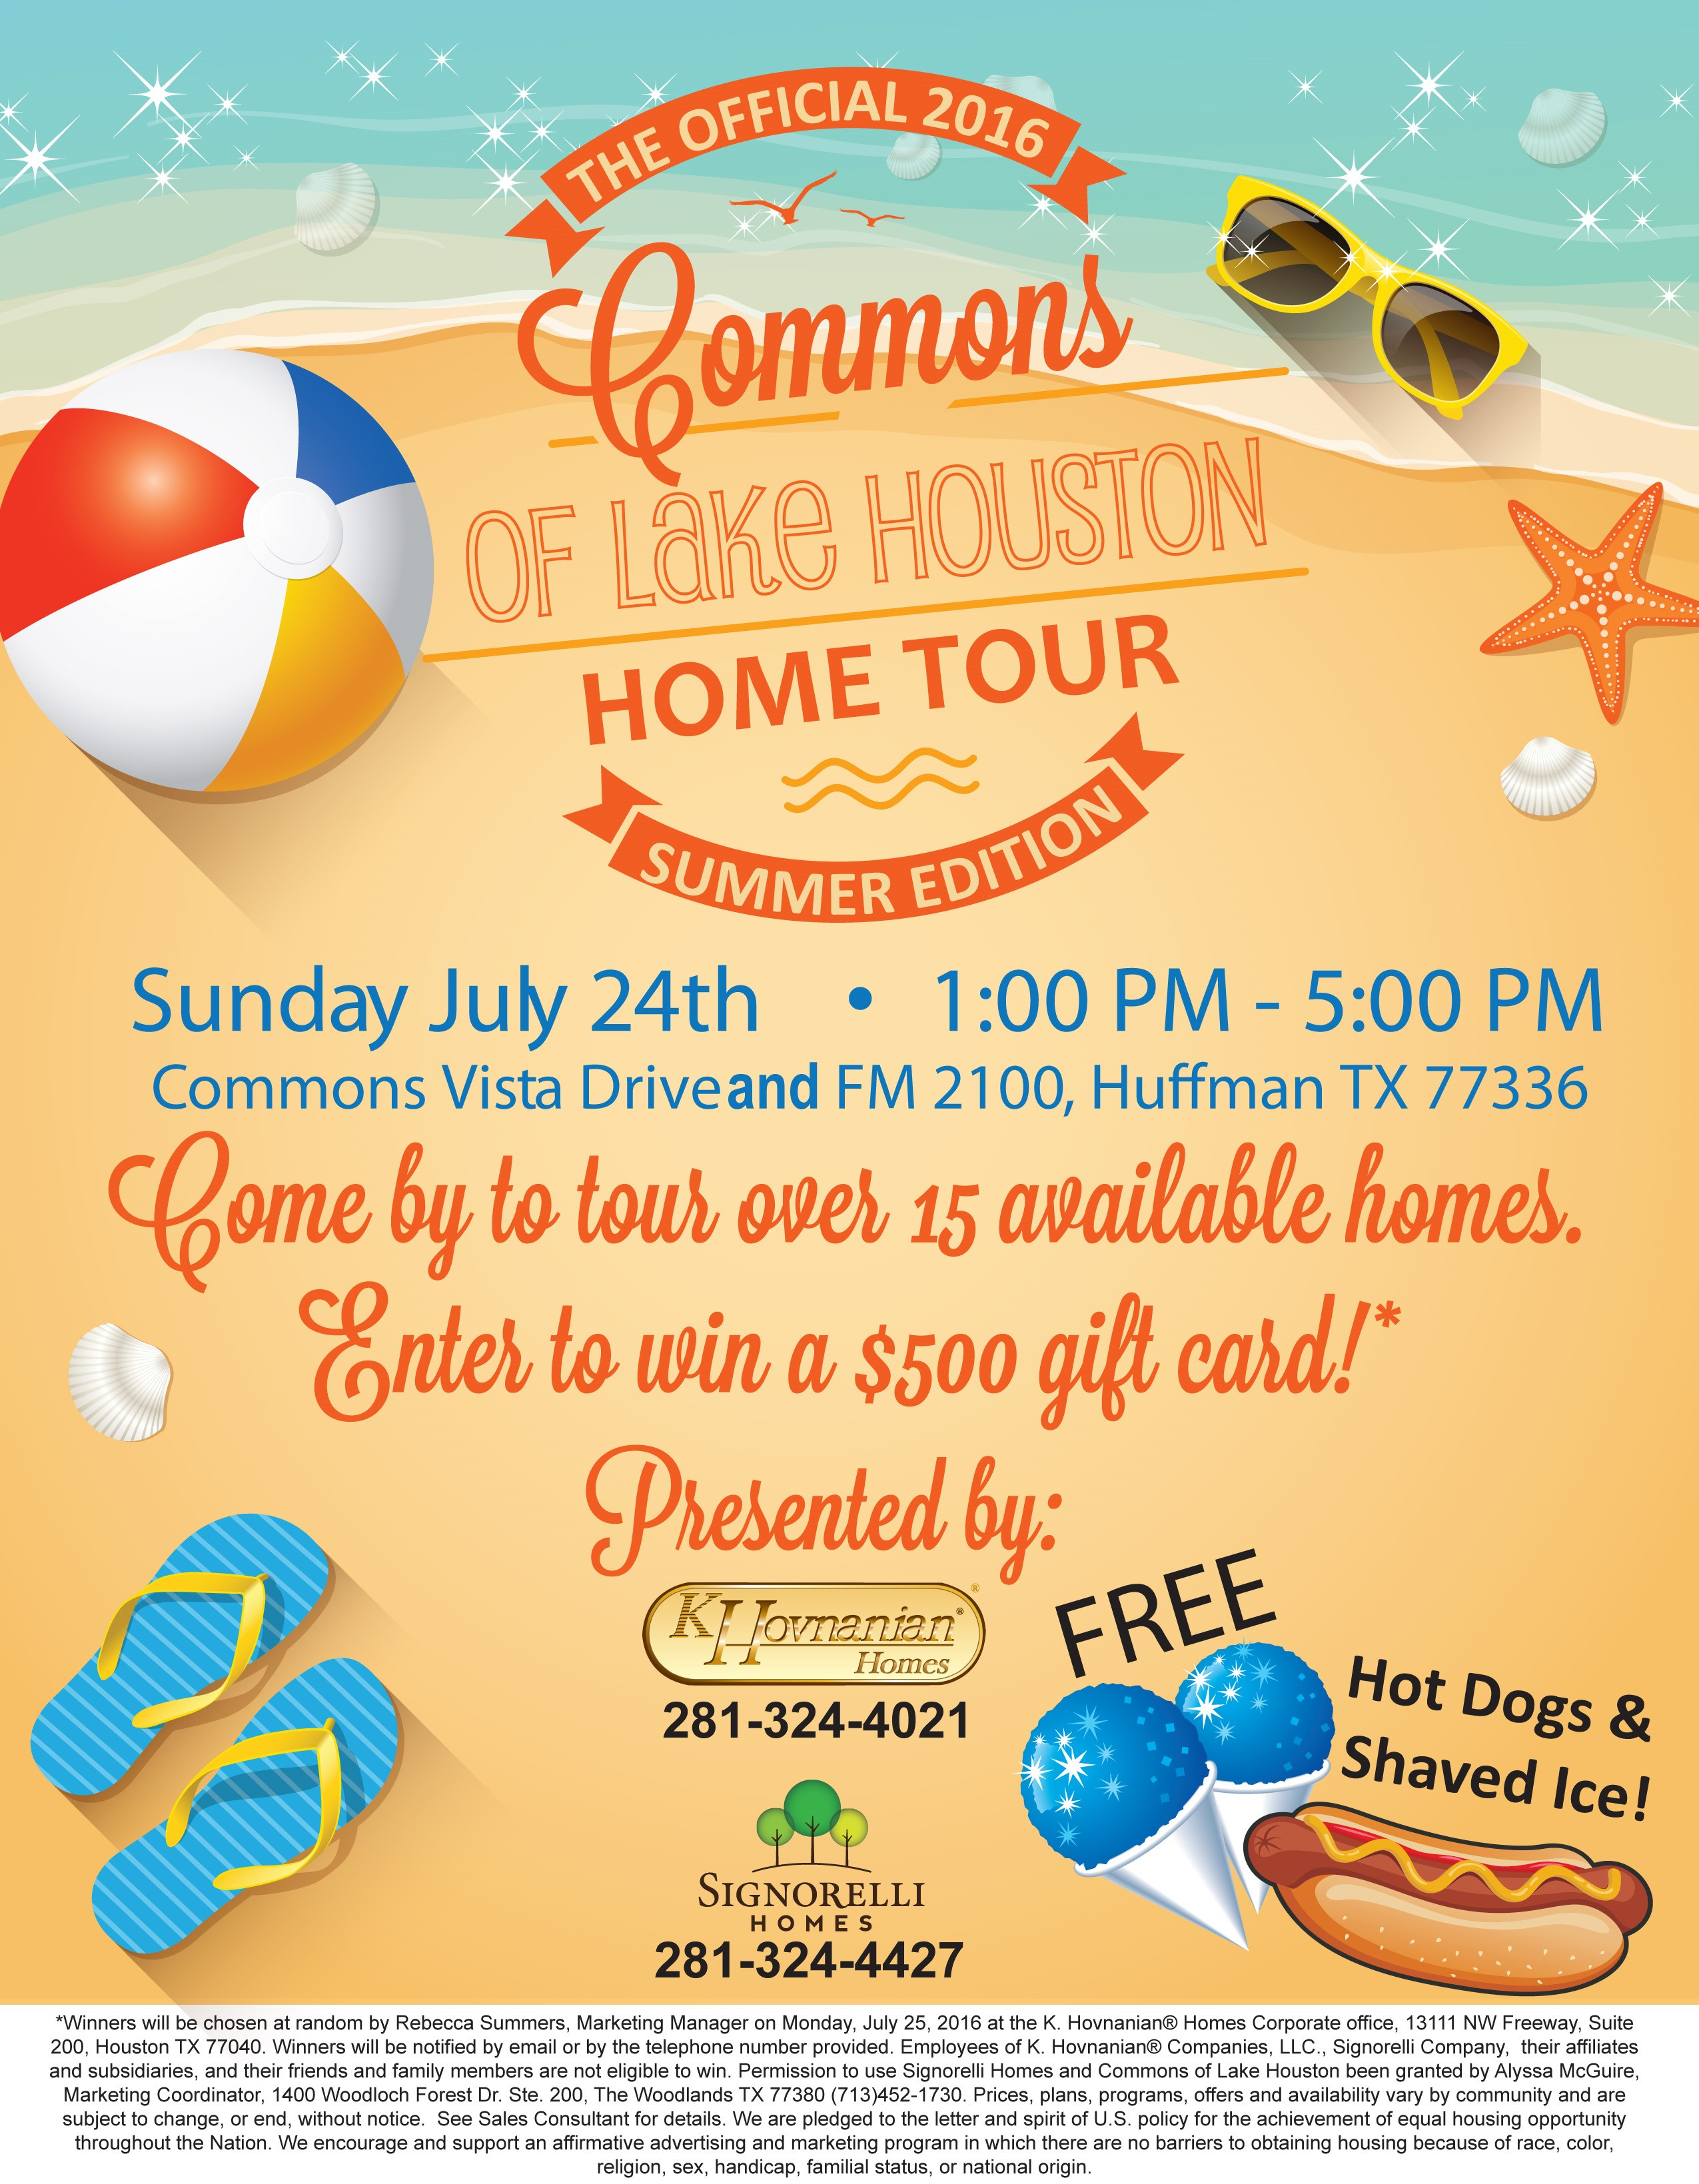 Official Commons Home Tour Summer Edition